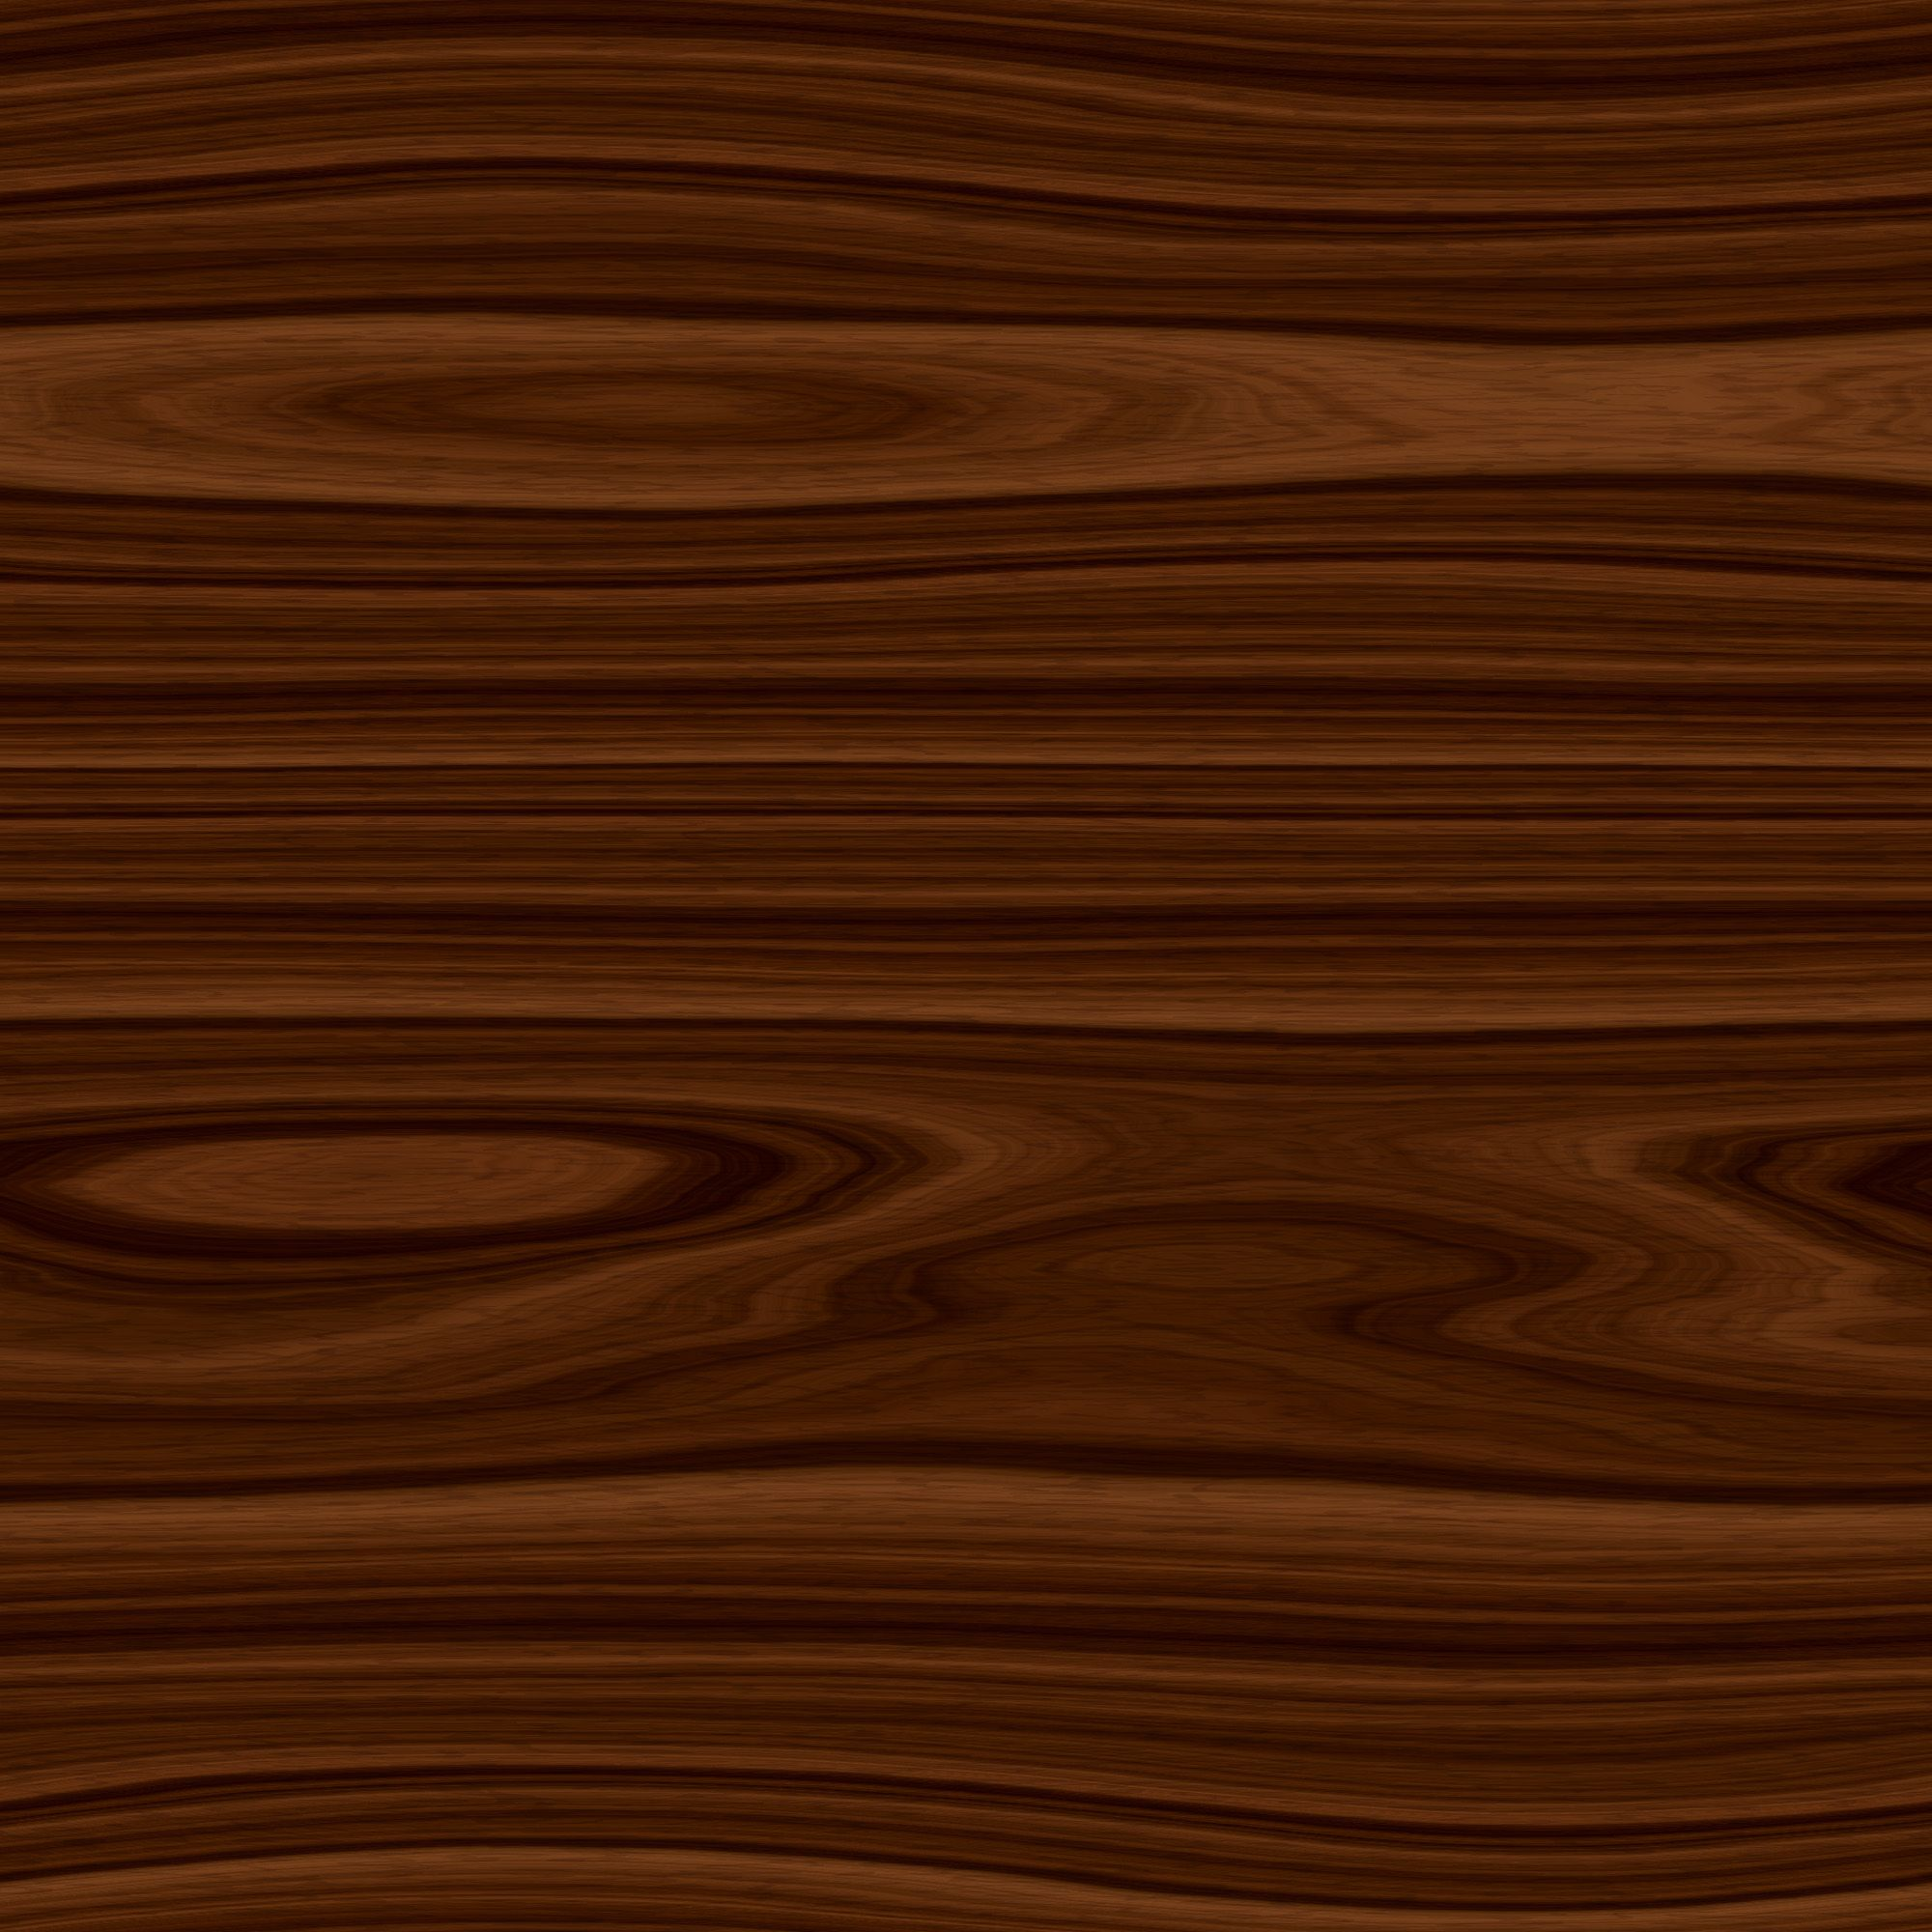 Seamless wood fine sabbia texture texturise free seamless textures - Texture Seamless Wood 5 Free Seamless Wood Texture I Was The Mood To Do Some Seamless Wooden Backgrounds So Here Is The First There Are 28 More To Come